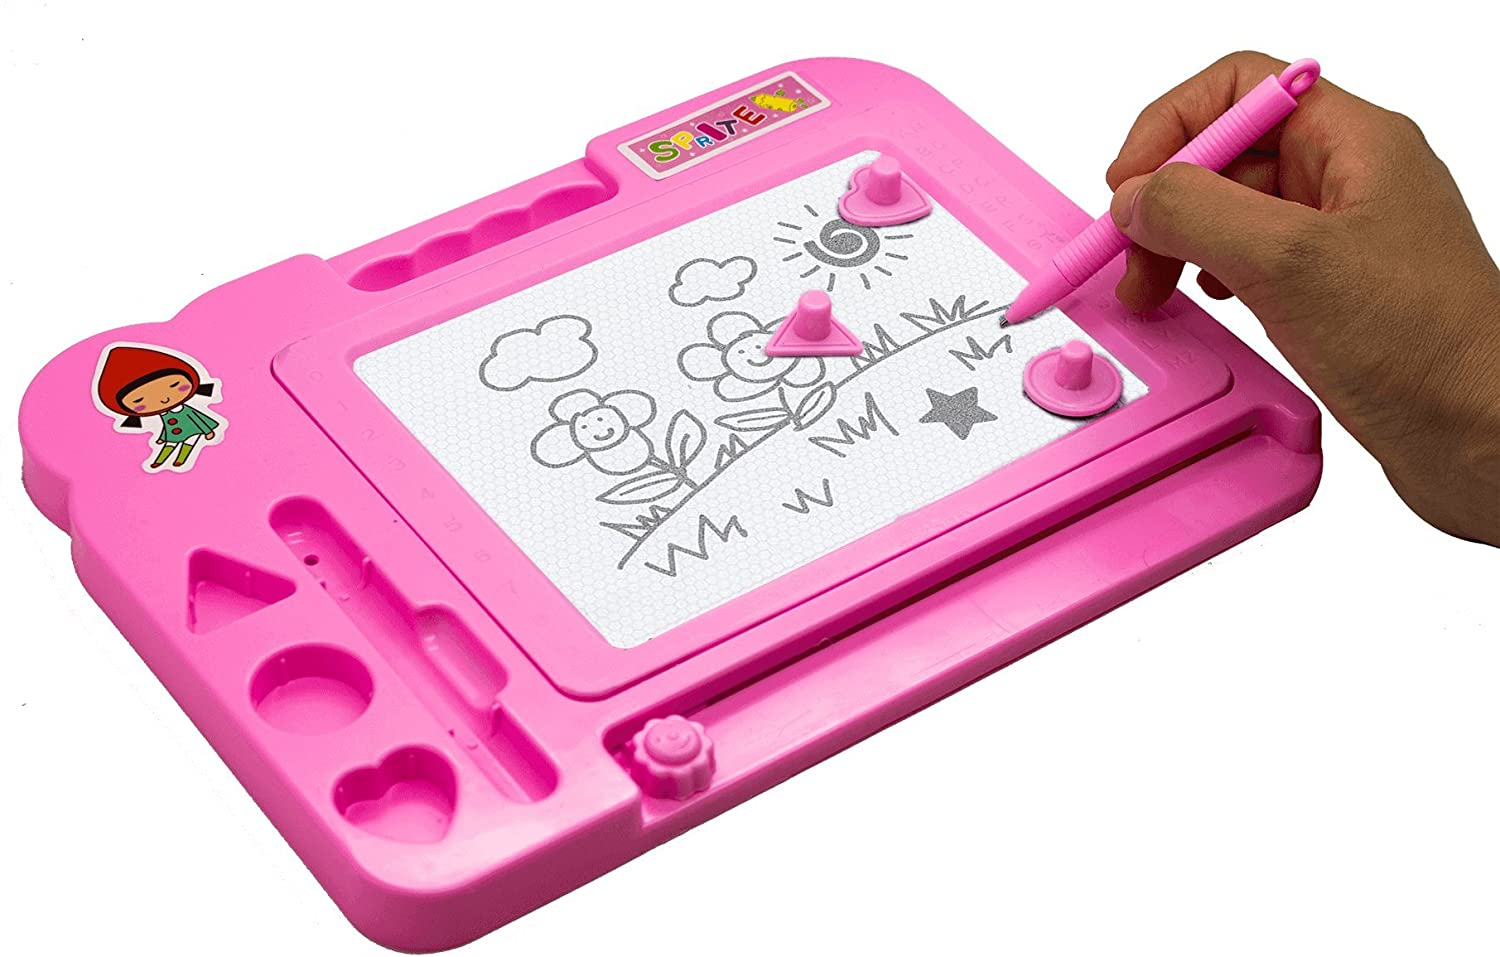 1x Kids Magnetic Drawing Board Scribbler Sketcher Doodle Small Educational Toy